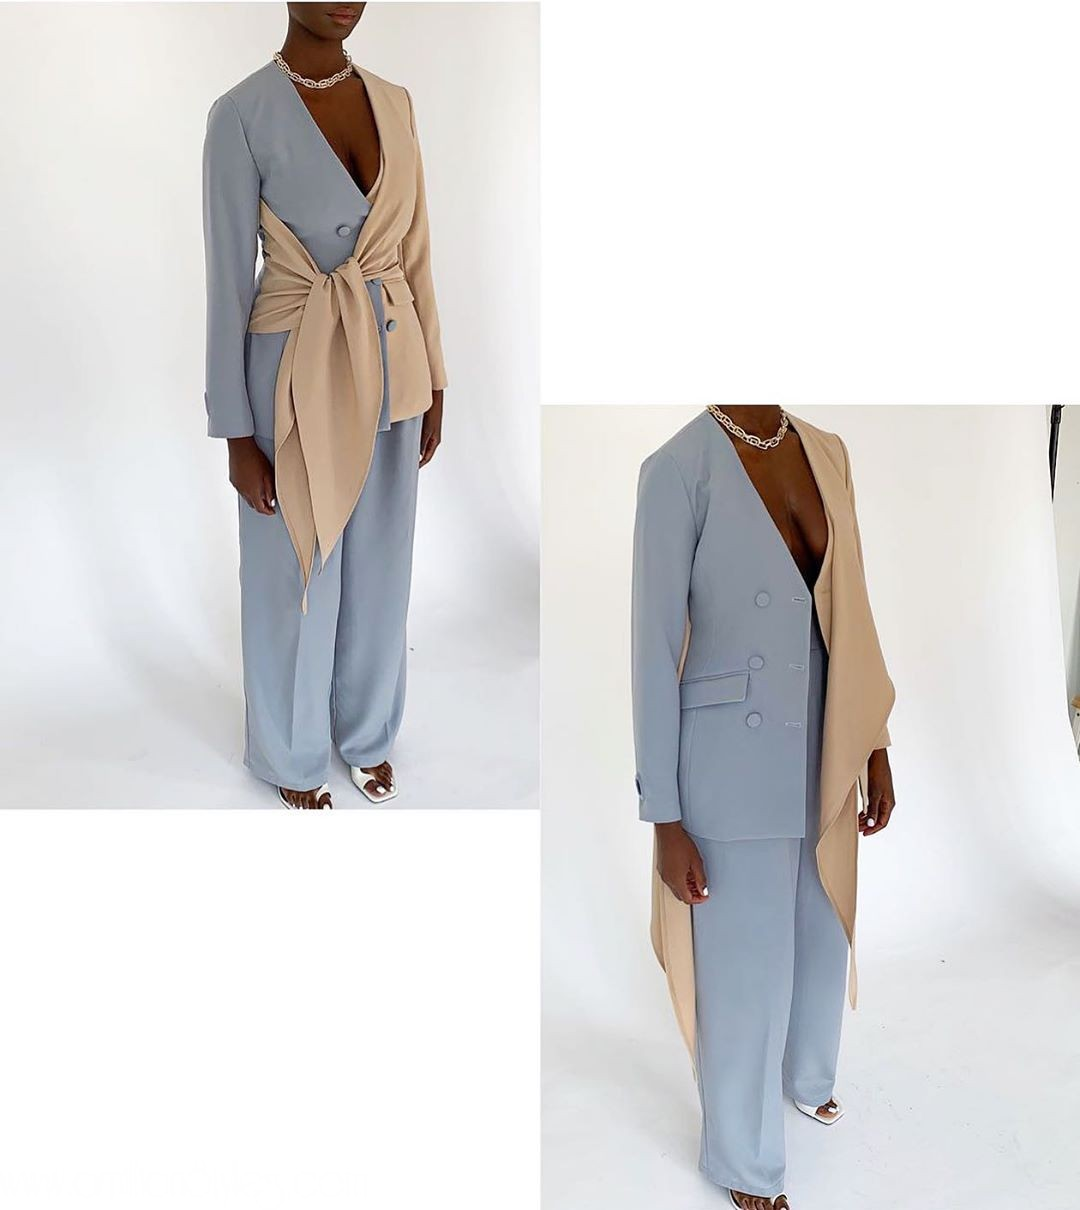 These Unconventional Suits By BBXMBAF Are The Real Deal